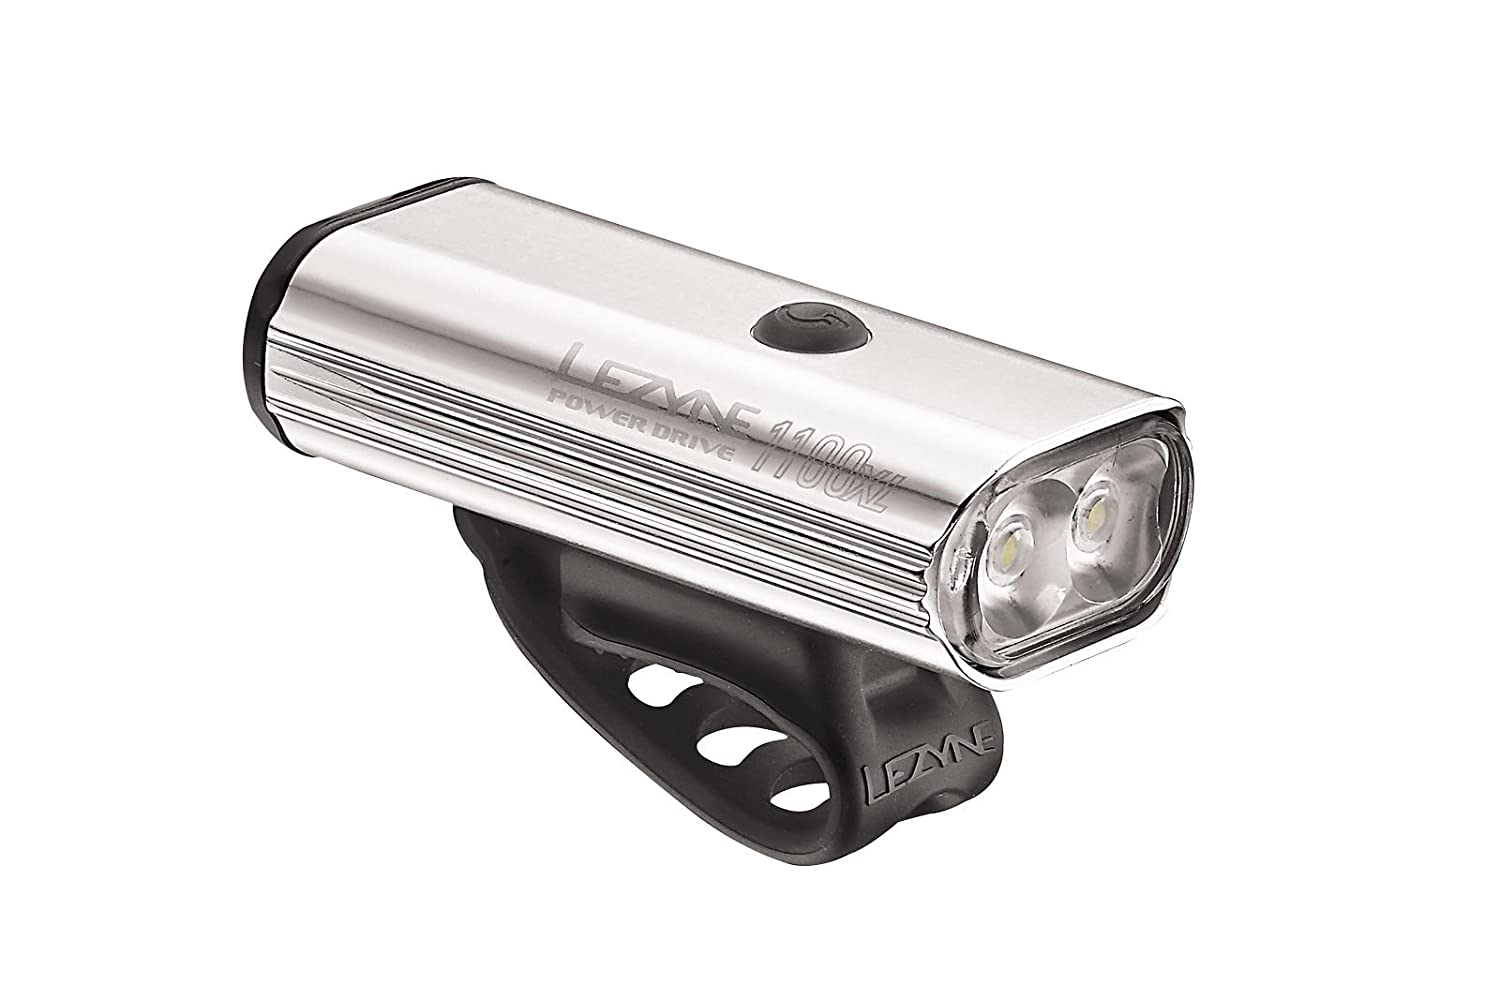 LEZYNE Power Drive 1100 Polish Bike Light, Silver Hi Gloss, One Size